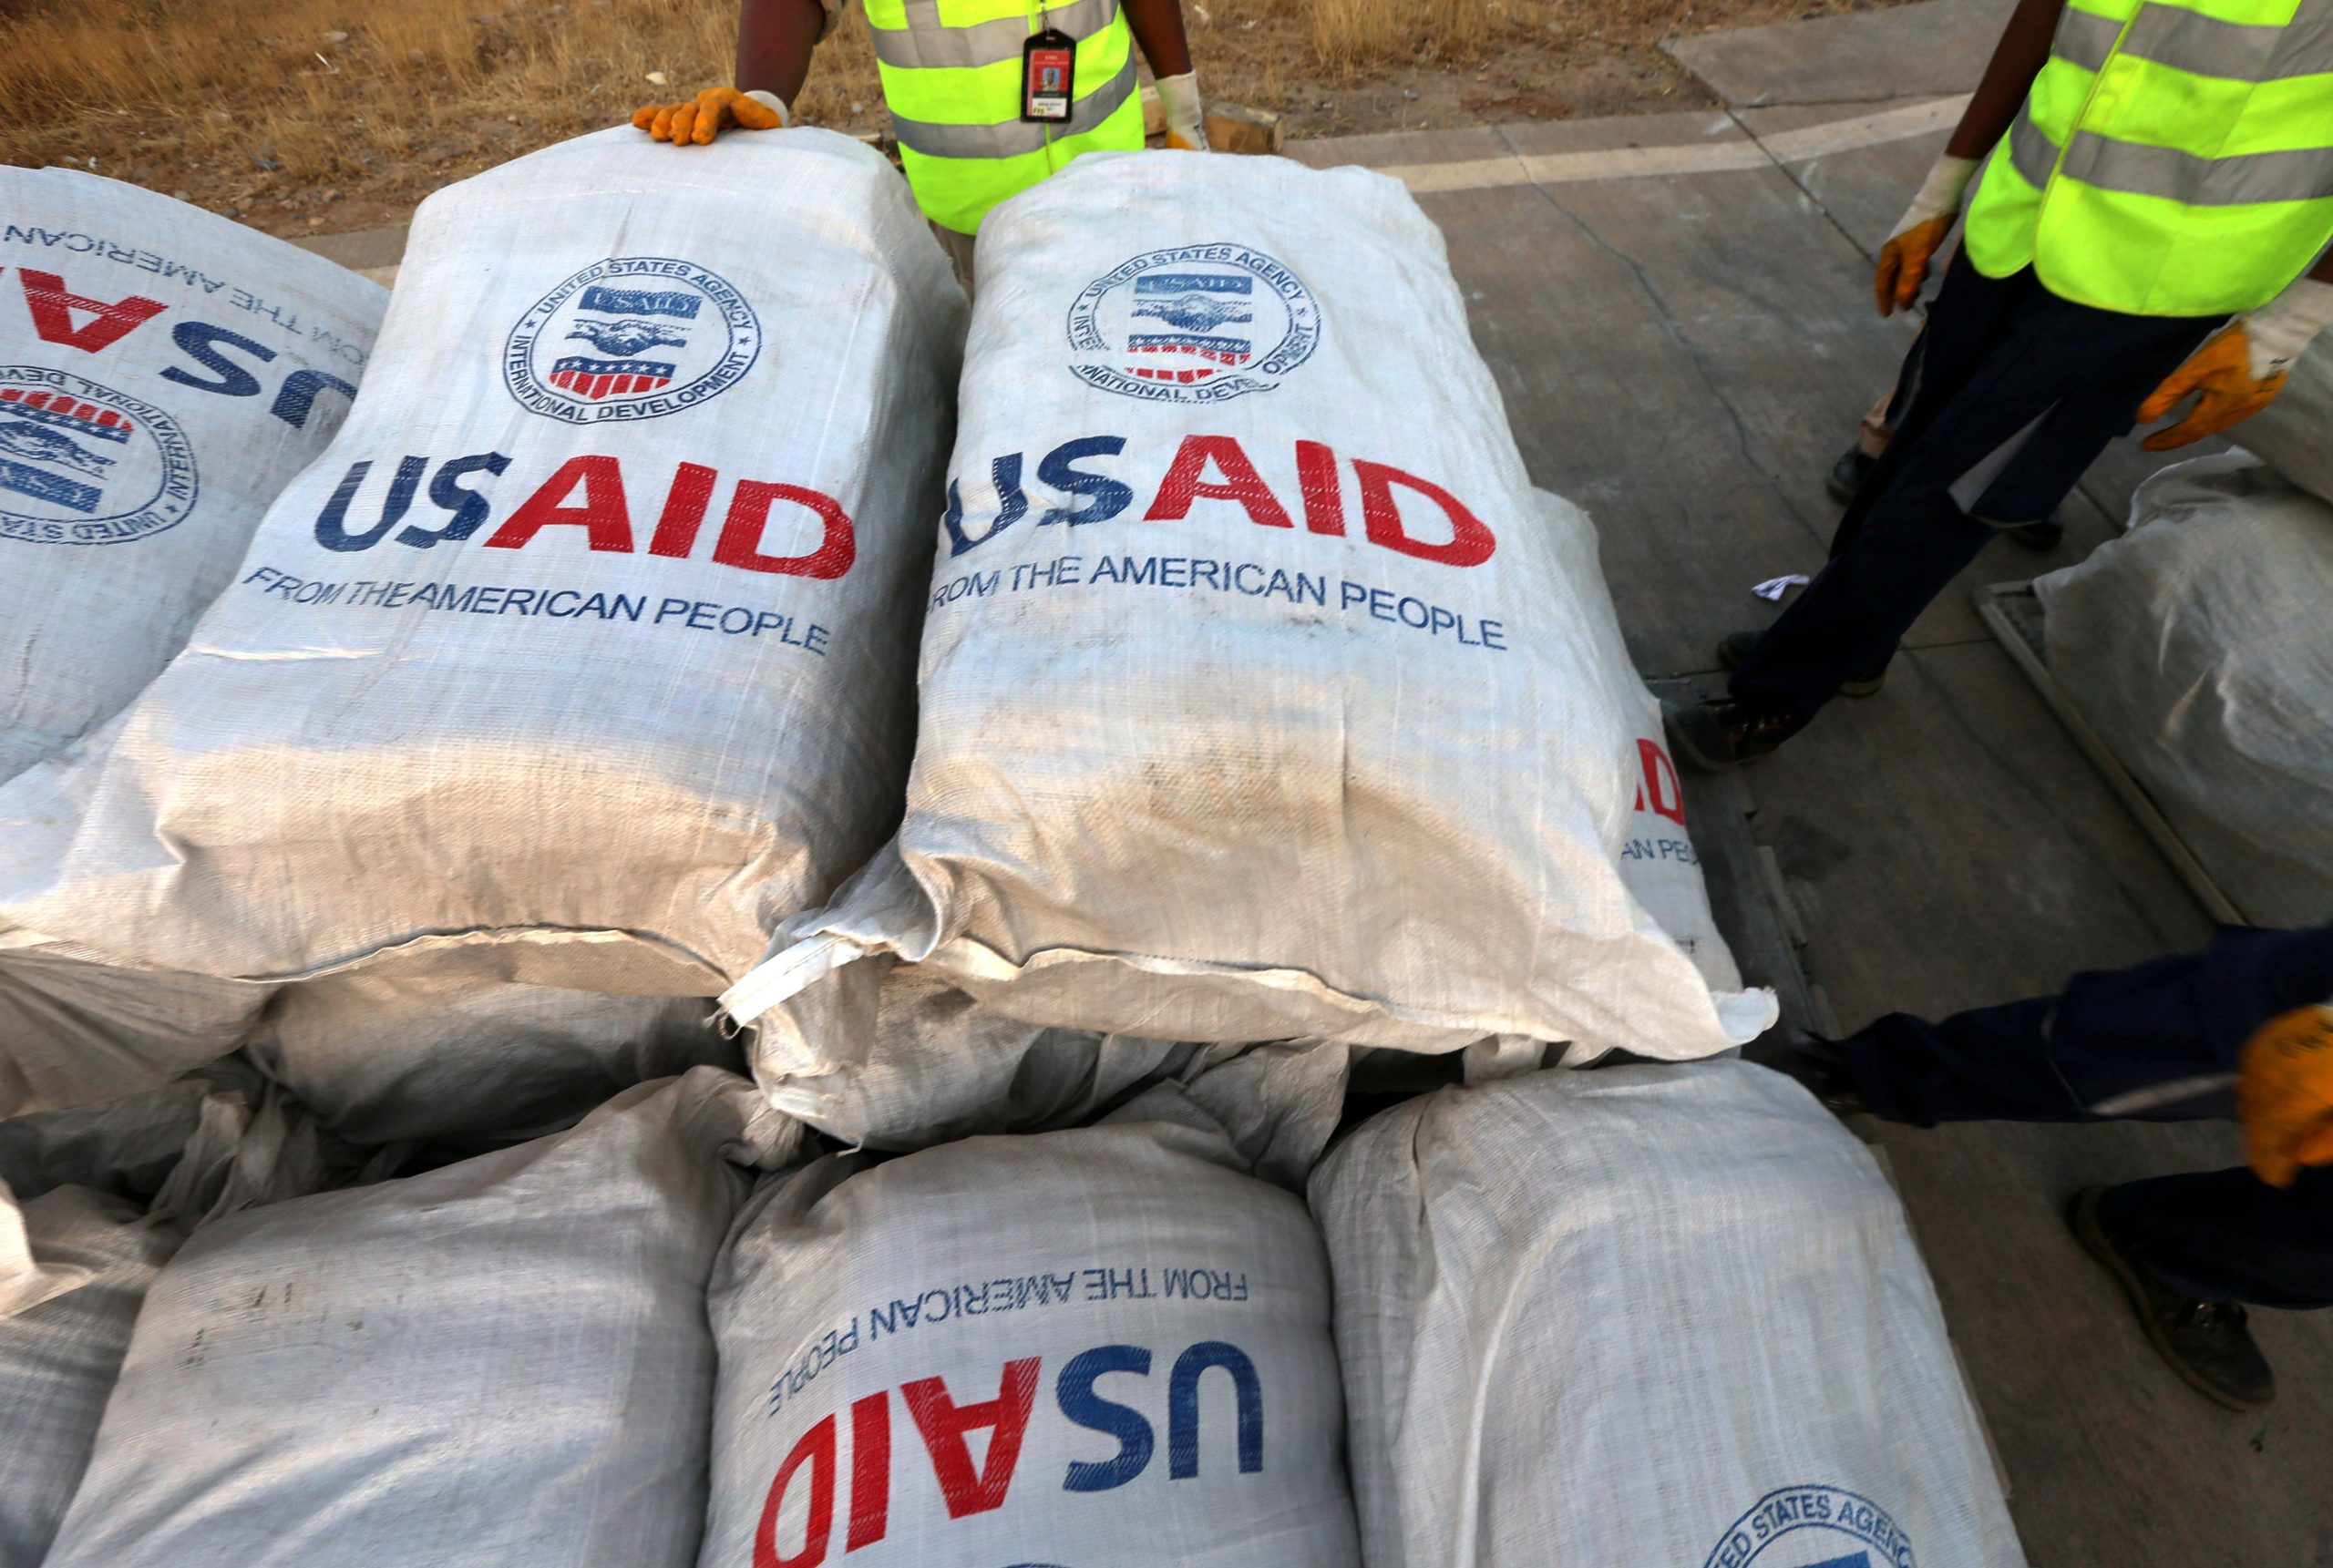 USAID inspector general is looking into possible violations of Federal Records Act by agency leaders, sources say